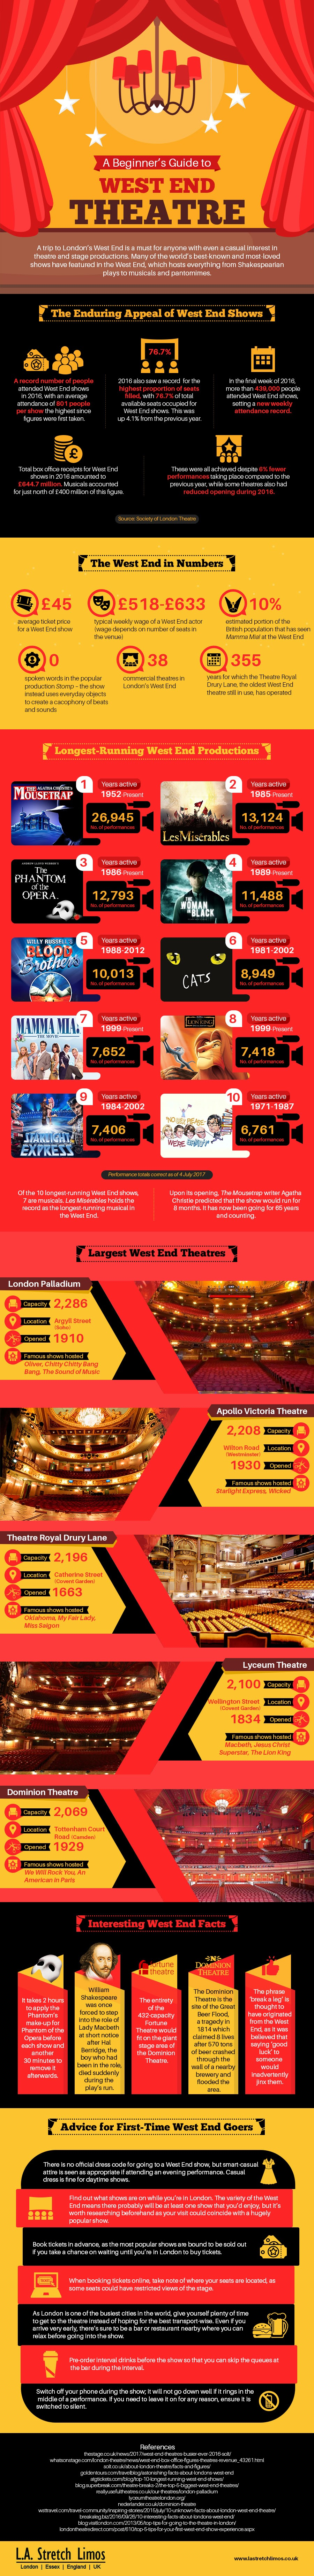 West End Theatre Guide for First-time Visitors #infographic